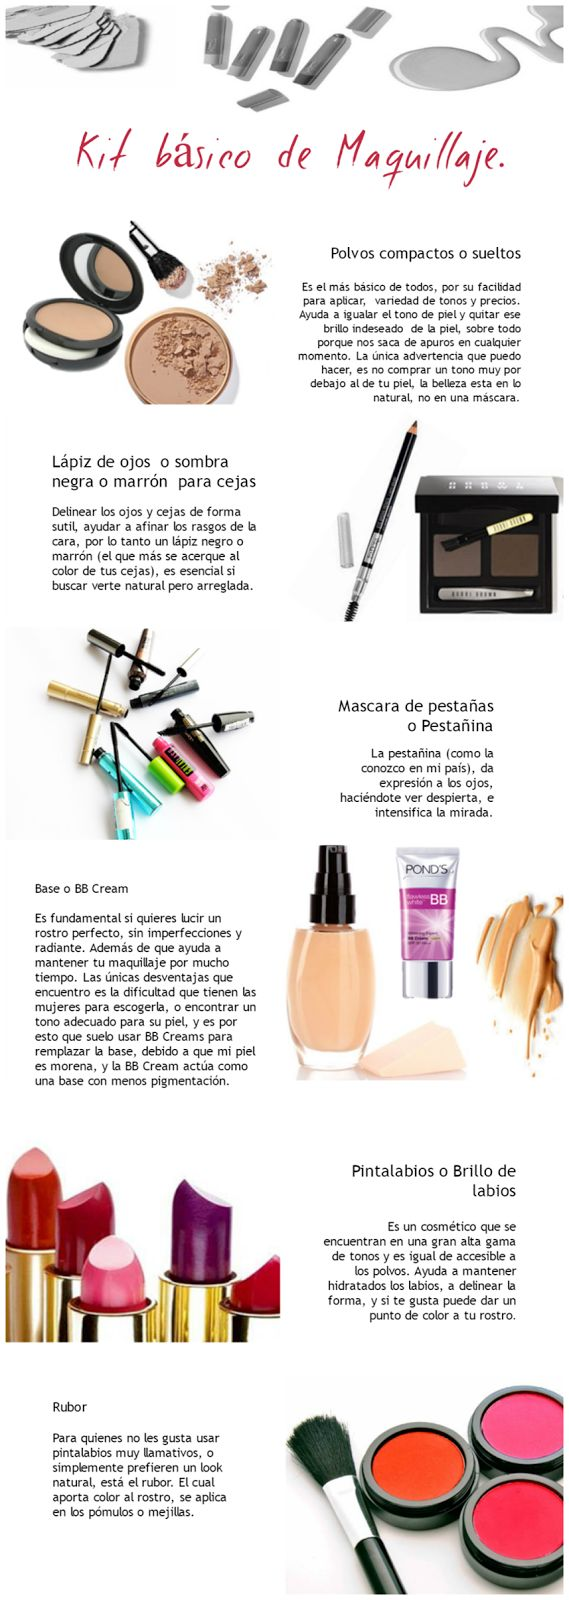 Munsh: Kit básico de Maquillaje basic, beauty, belleza, Blog, day, día, easy, esenciales, essential, Fashion, Hazlo tu mismo, Kit, lips, makeup, maquillaje, natural, productos, products, rimel, tips